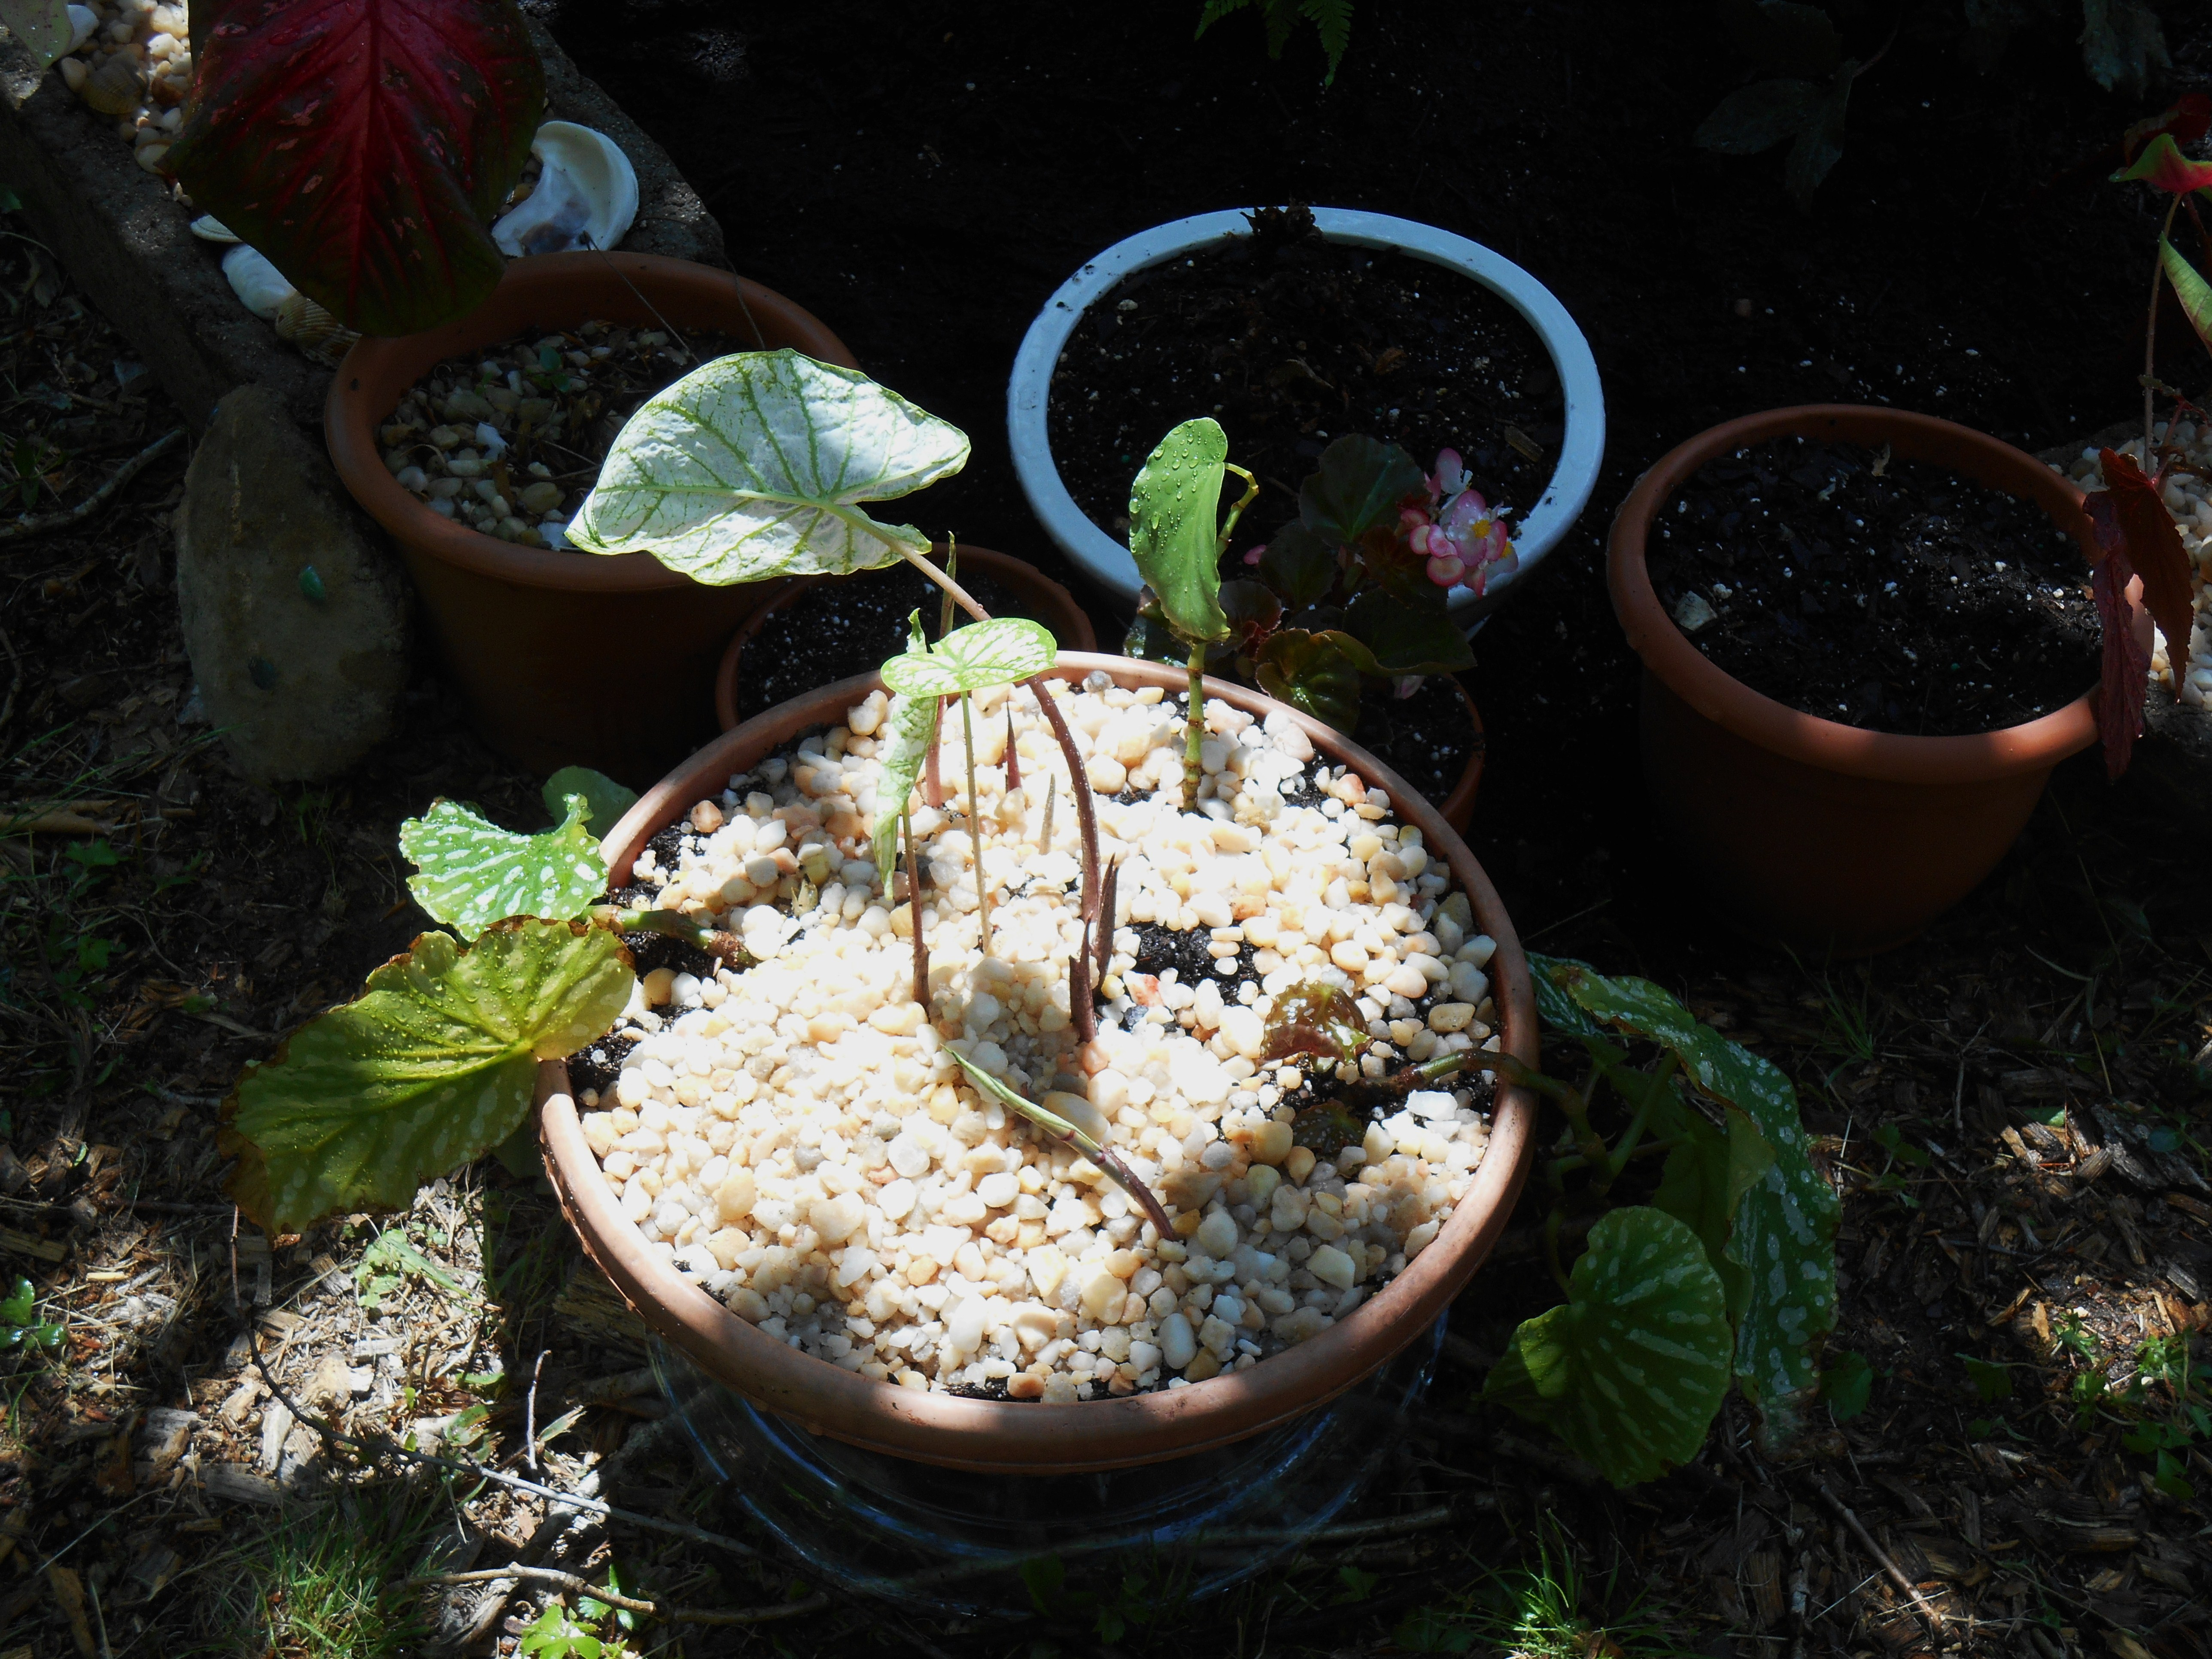 Rooted Begonia cuttings join sprouting Caladiums in this newly planted recycled plastic pot.